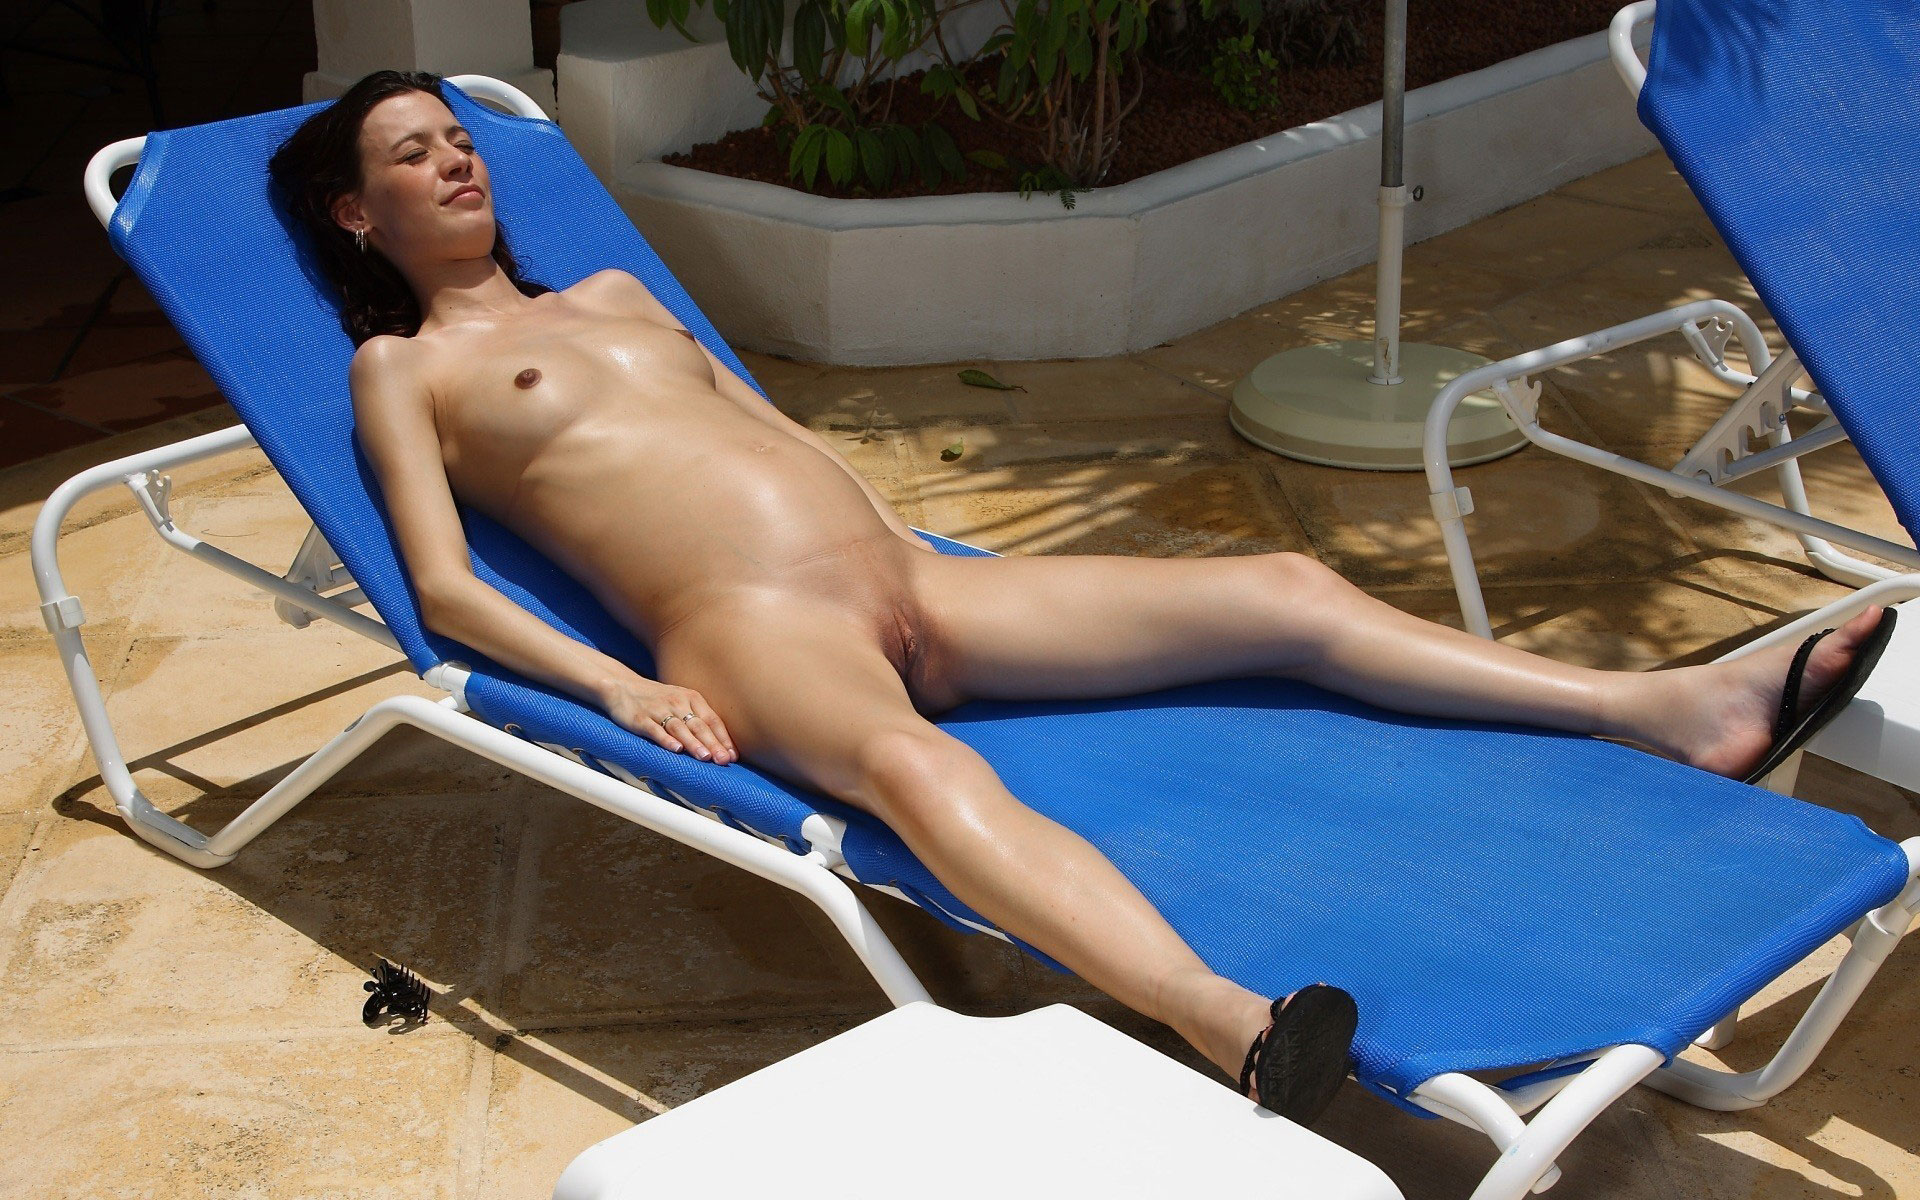 Pregnant Women Sunbathing On Nudist Beach - Pregnant Naturists-1228